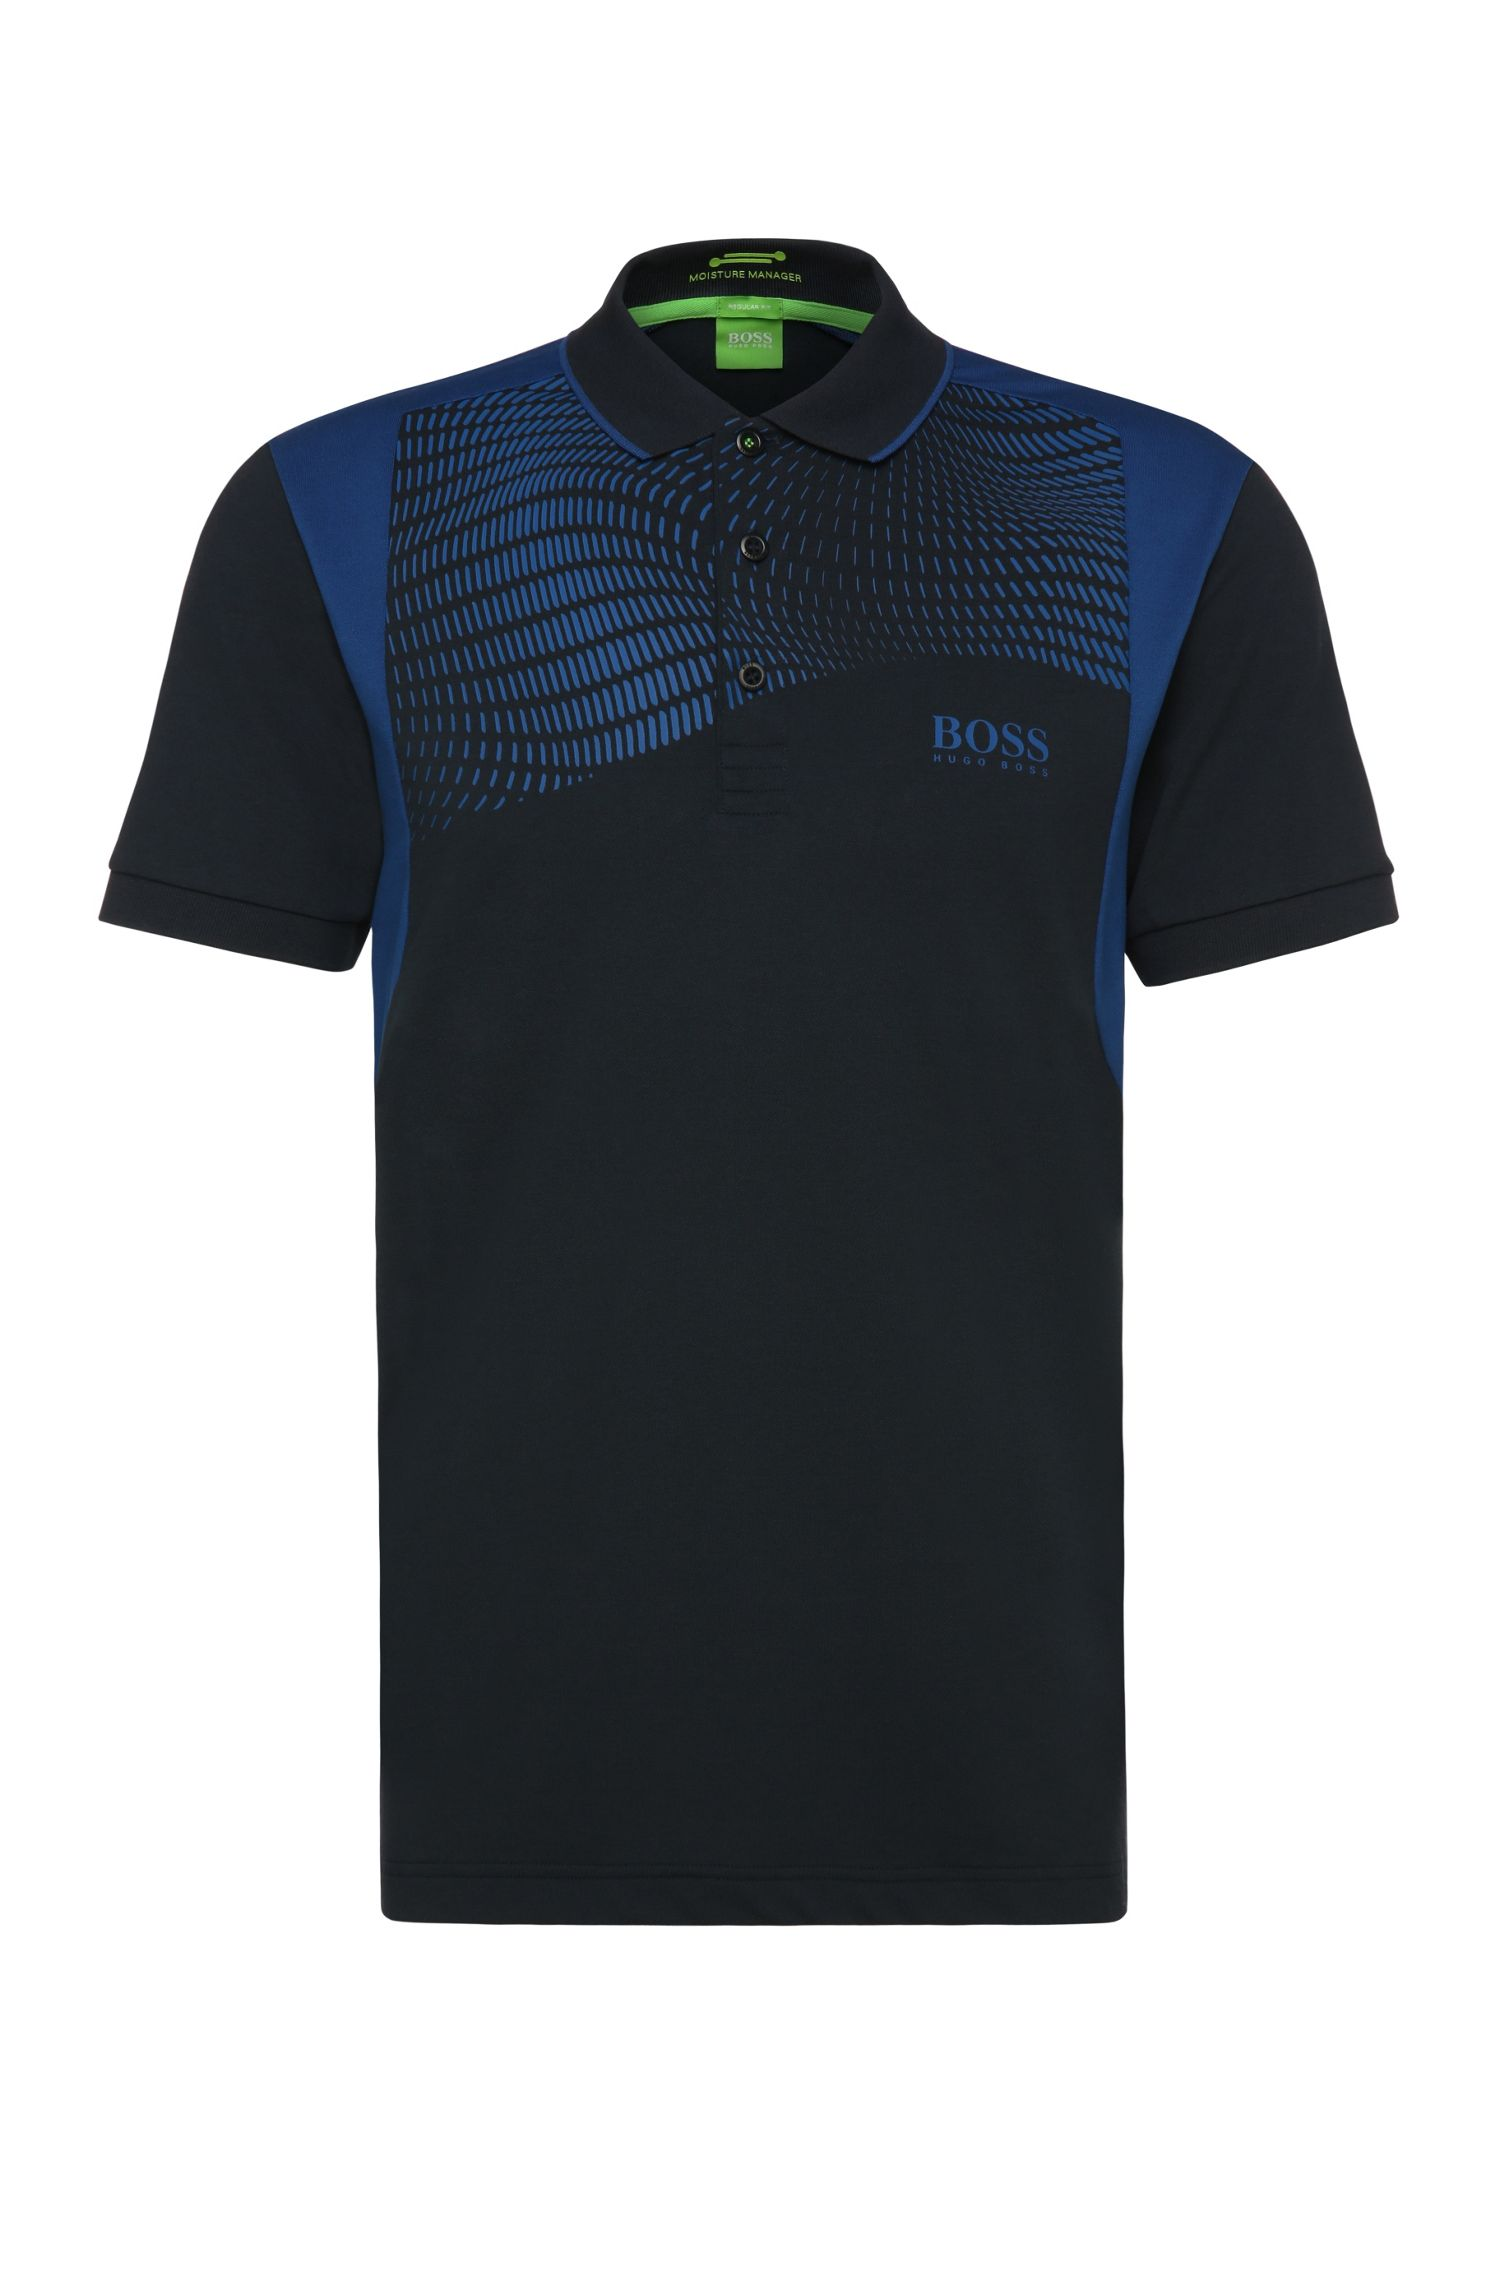 'Paddy Pro' | Regular Fit, Moisture Manager Stretch Polo Shirt